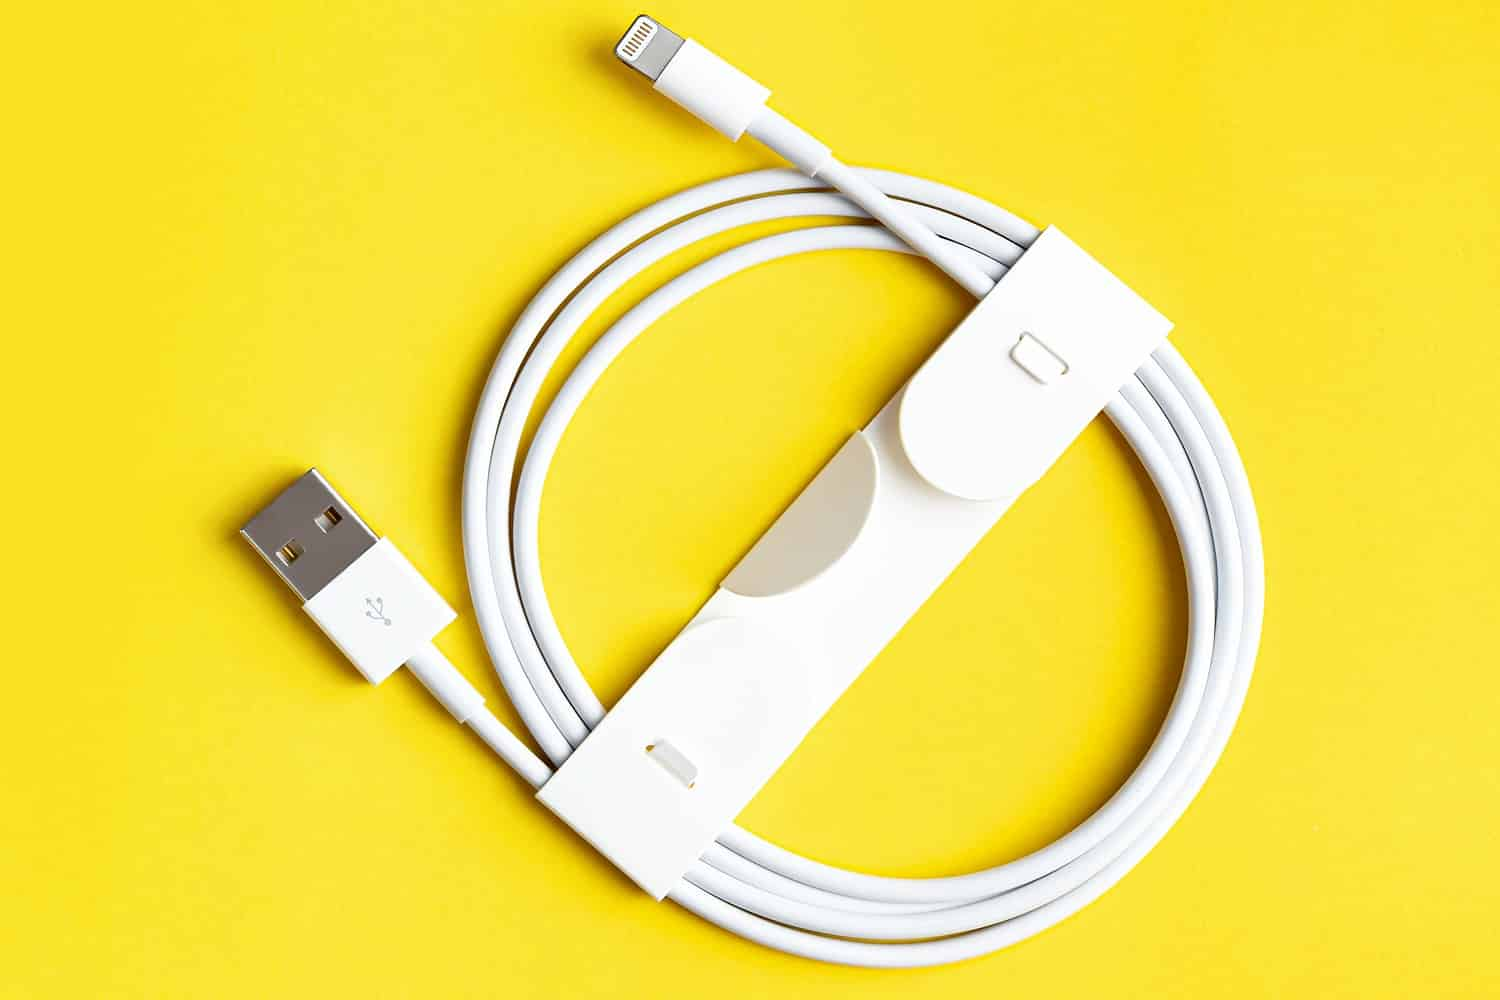 USB Charger for smartphone or tablet on yellow background